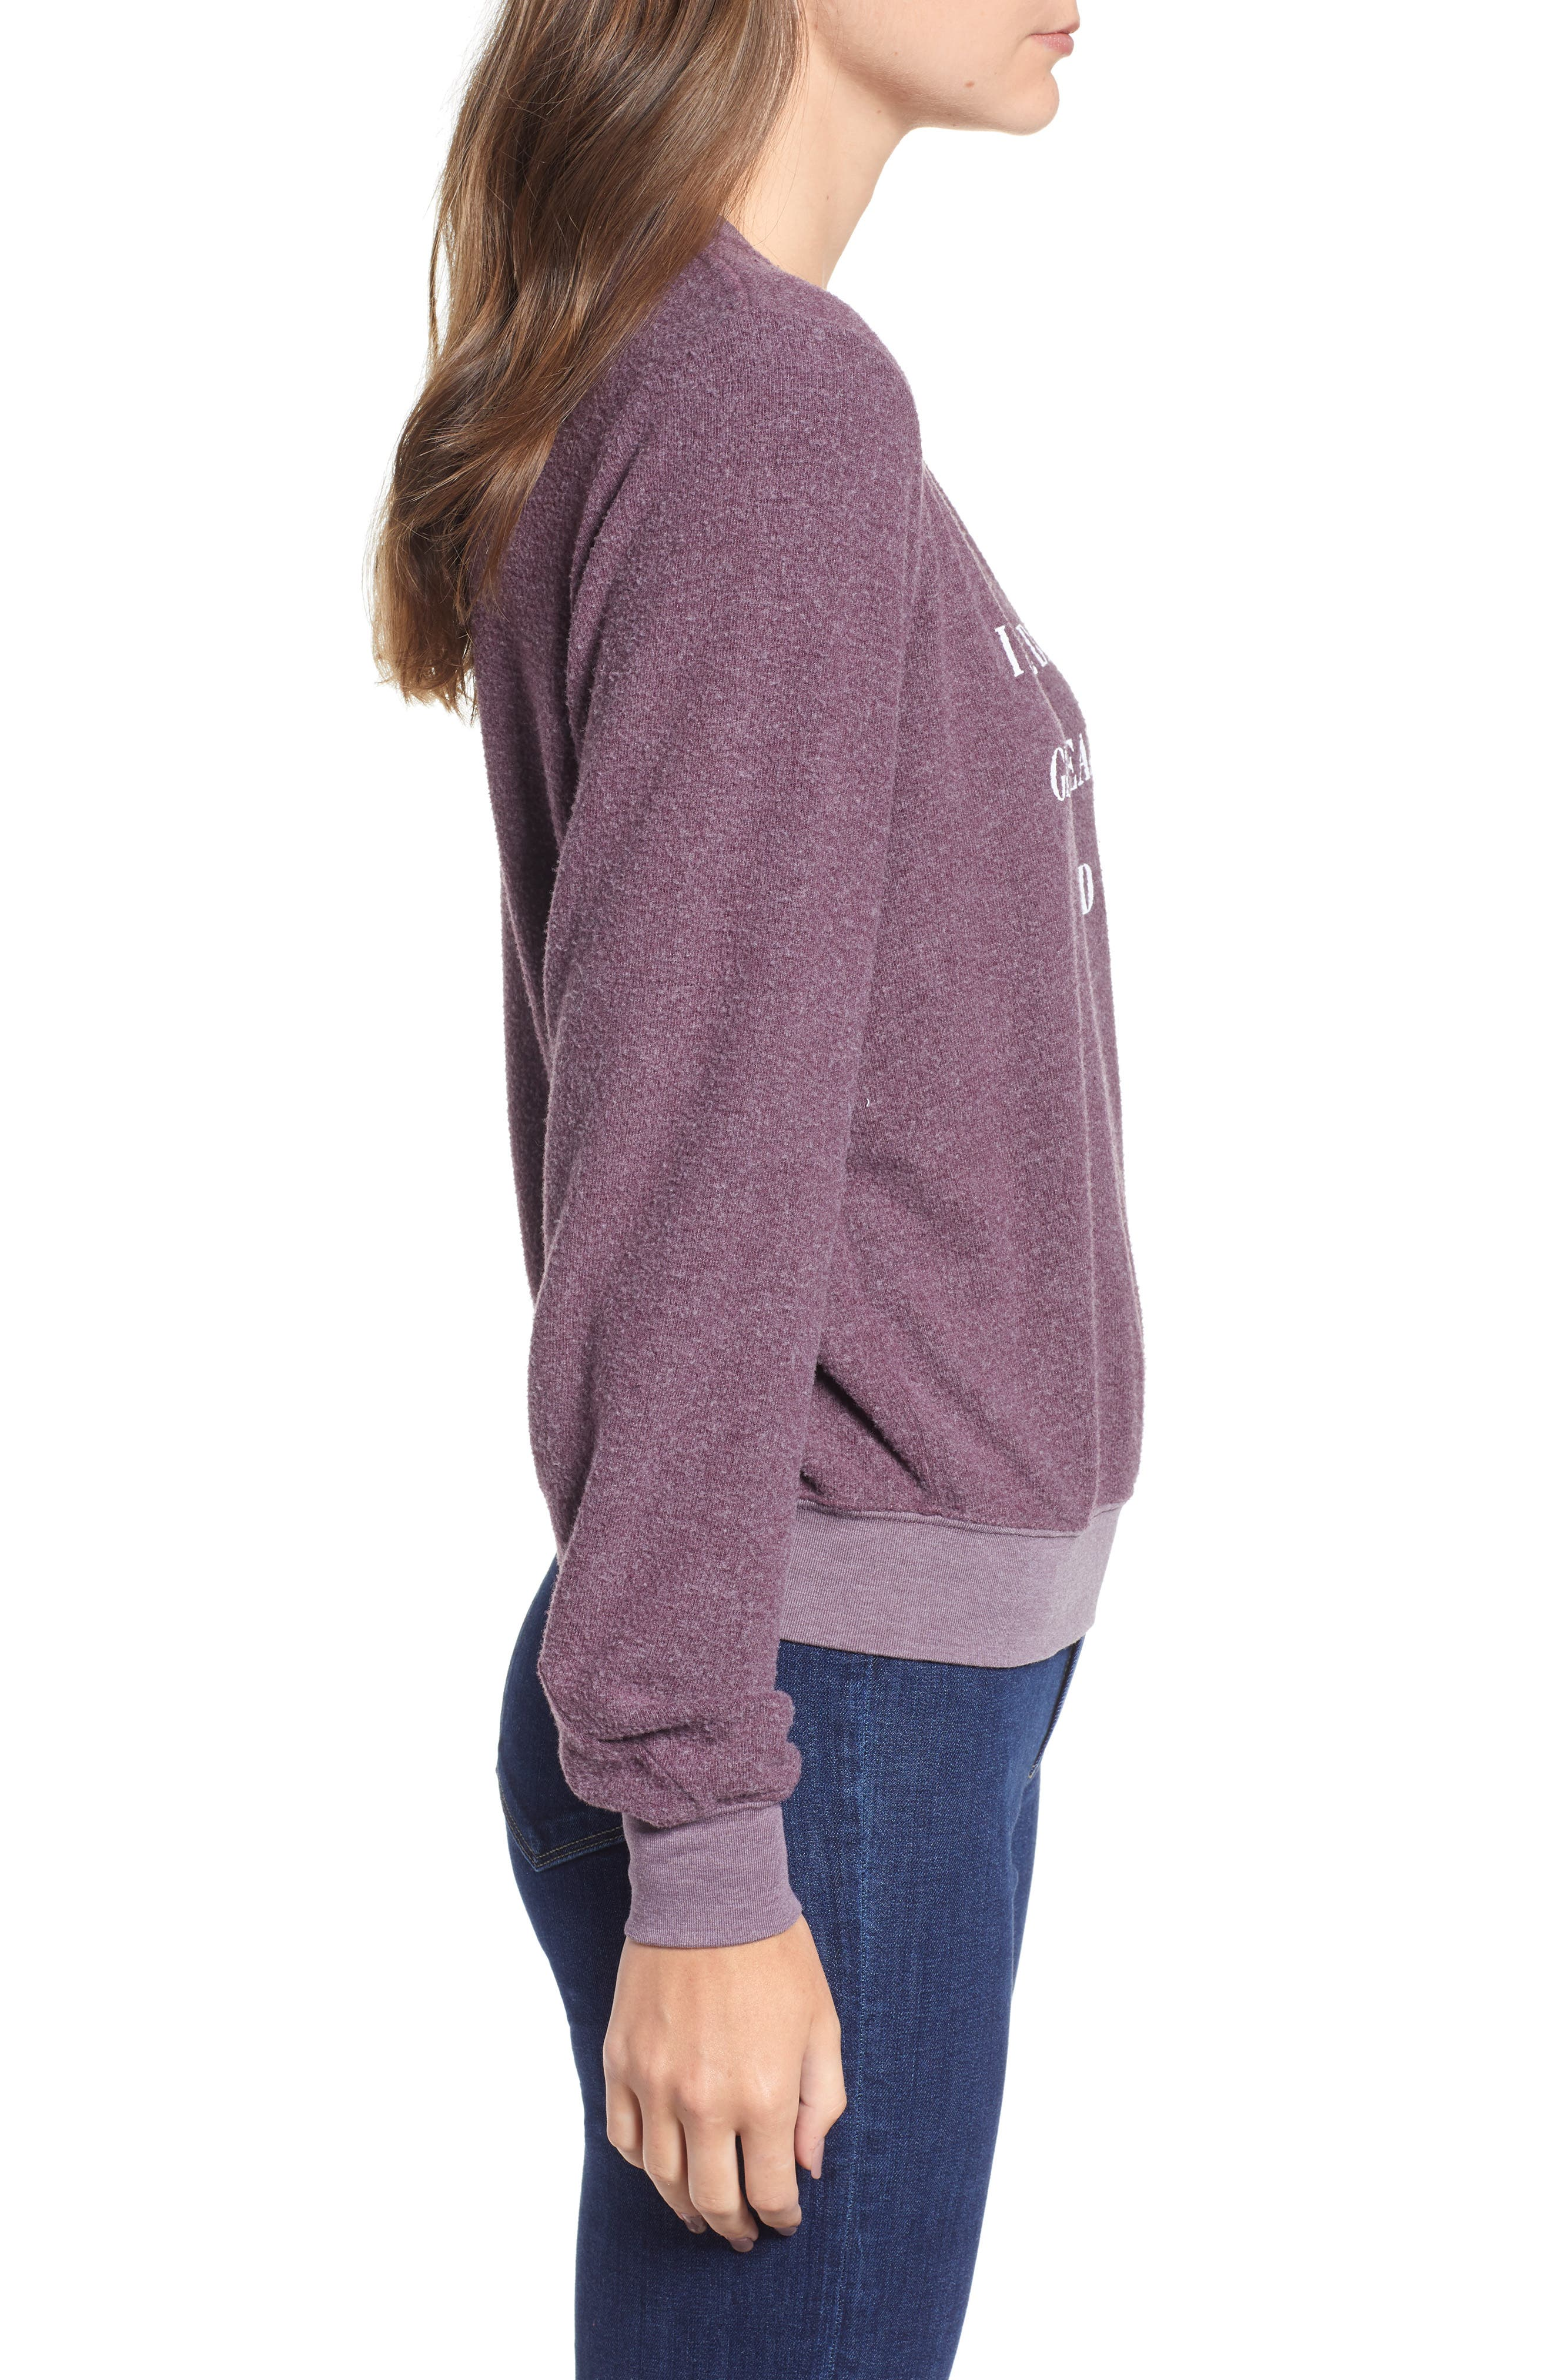 Ready For Bed Baggy Beach Jumper Sweatshirt,                             Alternate thumbnail 3, color,                             CRUSHED BERRY